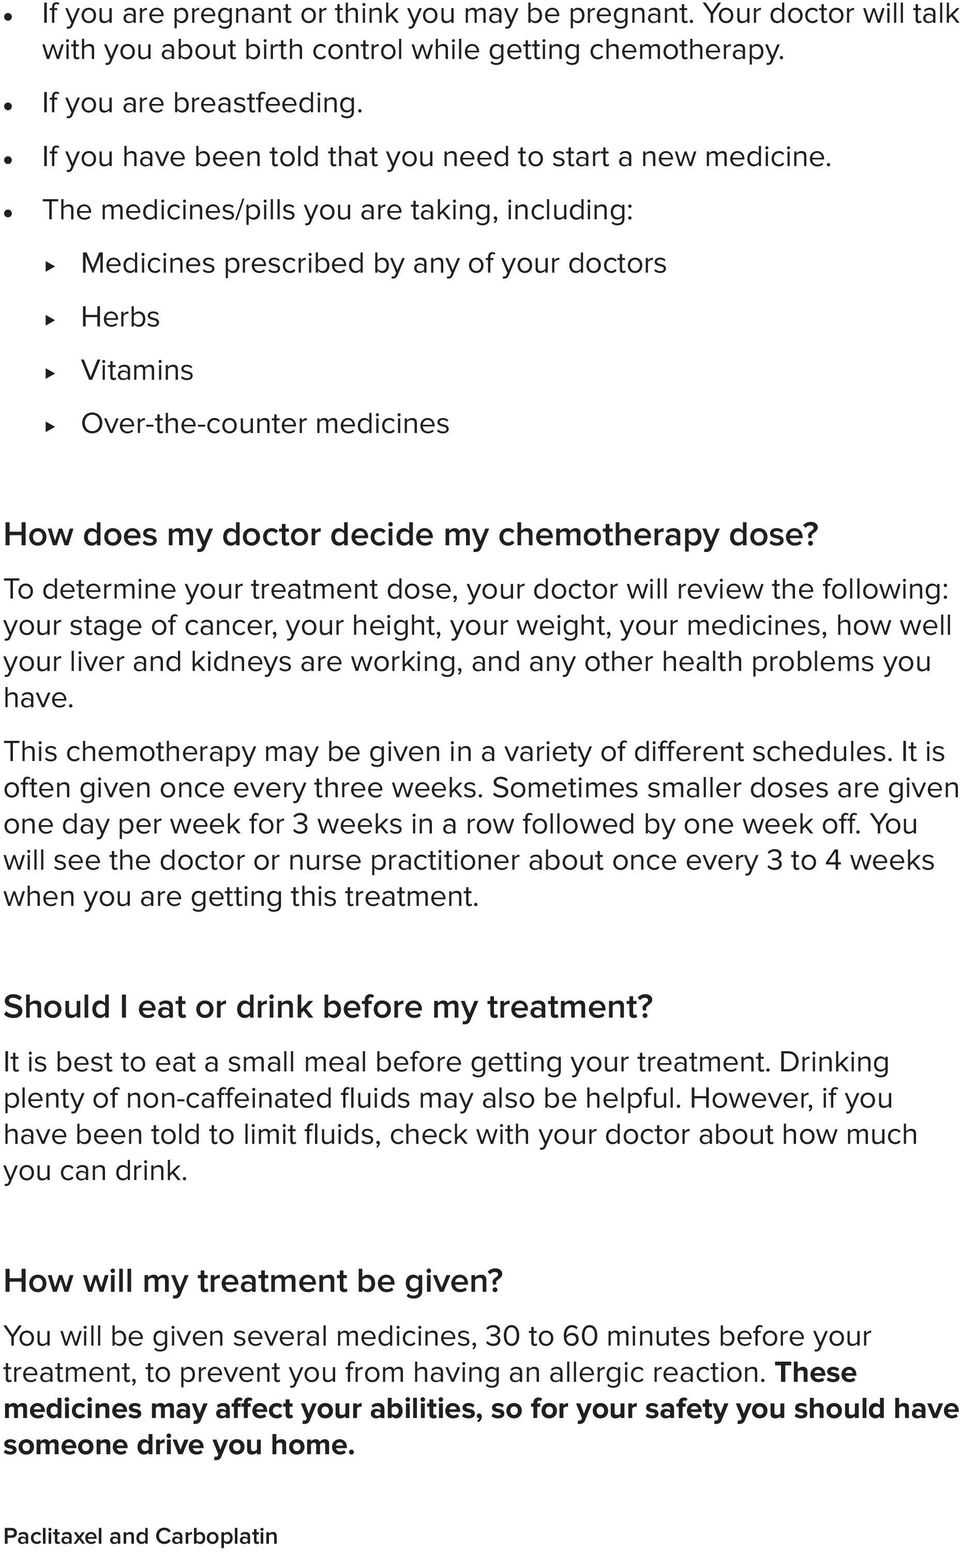 The medicines/pills you are taking, including: Medicines prescribed by any of your doctors Herbs Vitamins Over-the-counter medicines How does my doctor decide my chemotherapy dose?